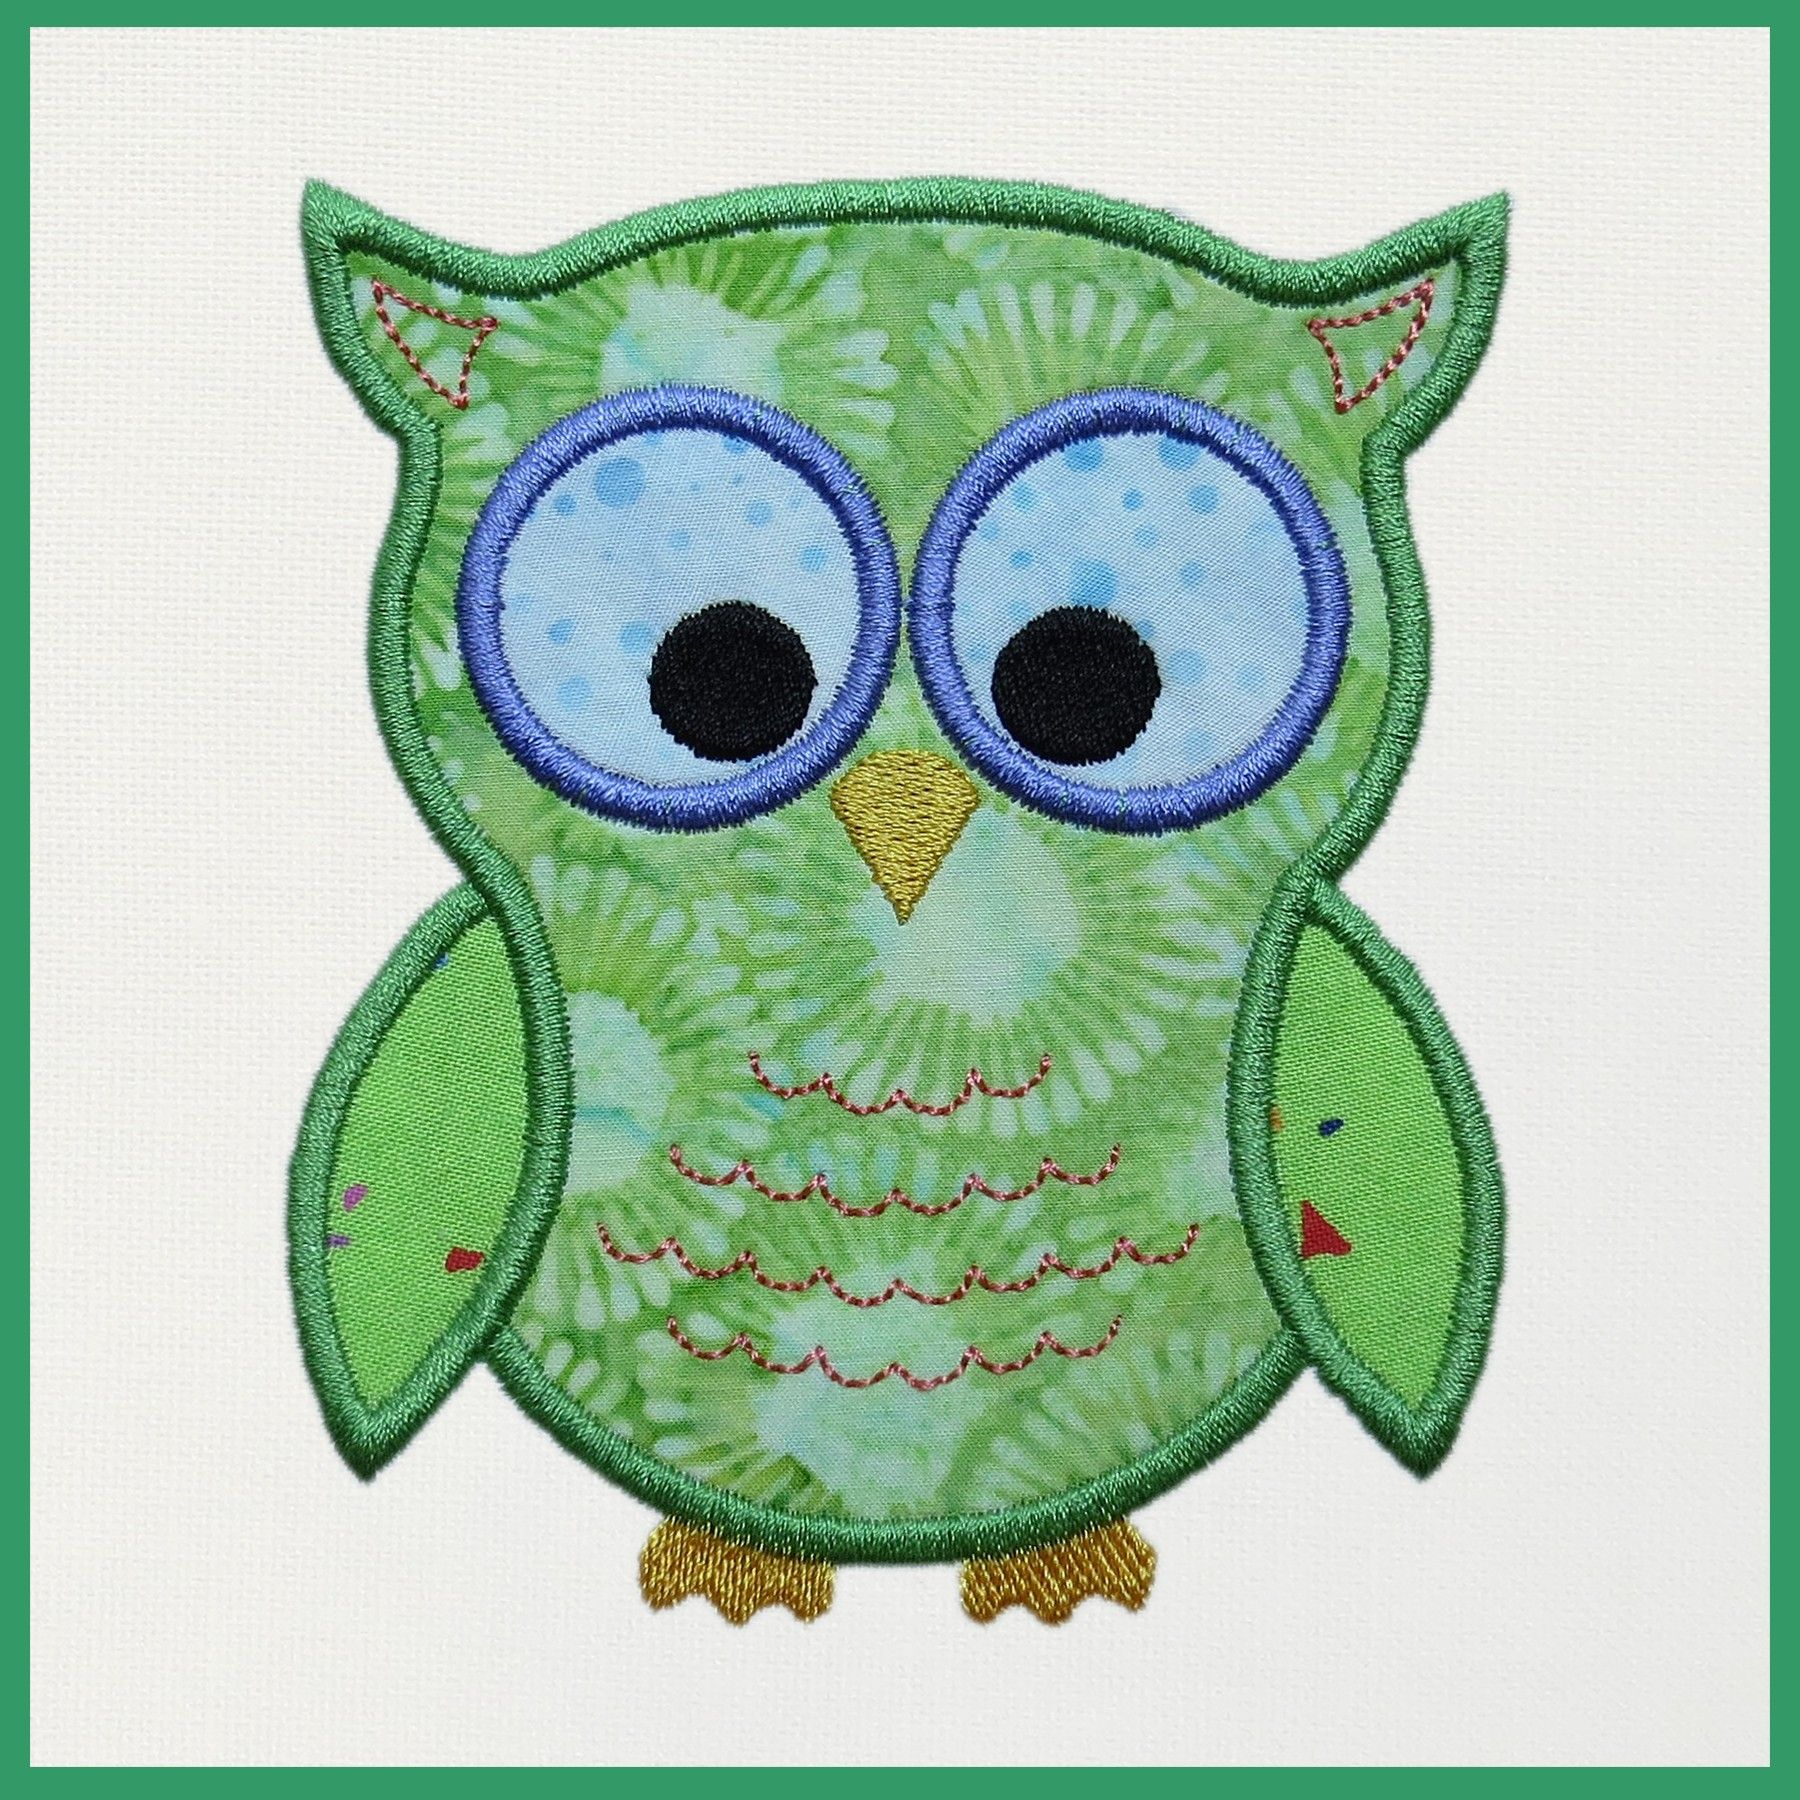 This free machine embroidery appliqué download includes a